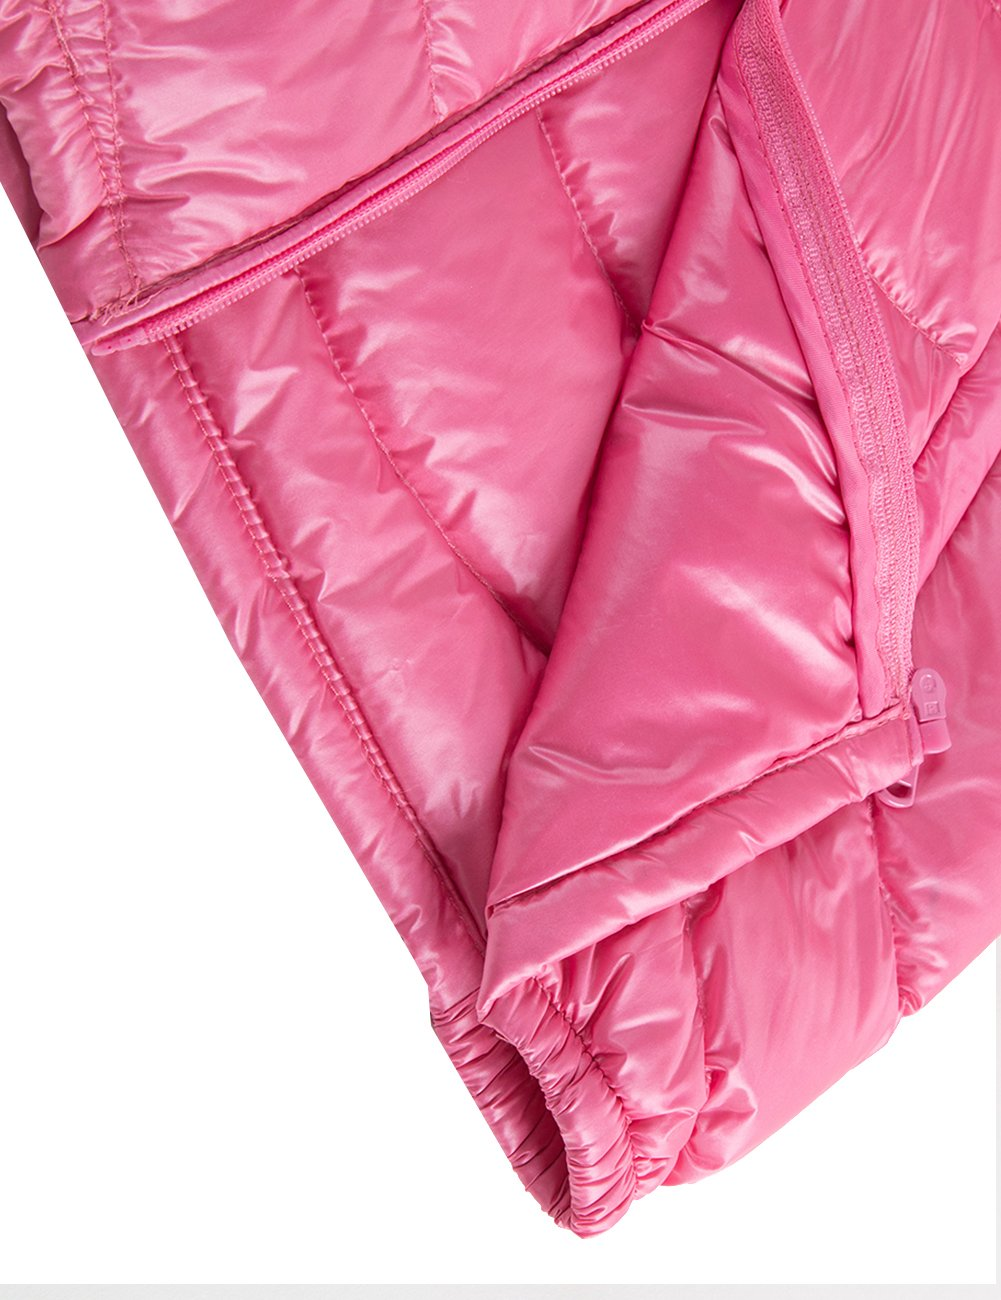 Spring&Gege Boys' Quilted Packable Hoodie Lightweight Puffer Jacket Windproof Outwear Children Warm Duck Down Coat for Boys and Girls Size 7-8 Years Pink by Spring&Gege (Image #9)